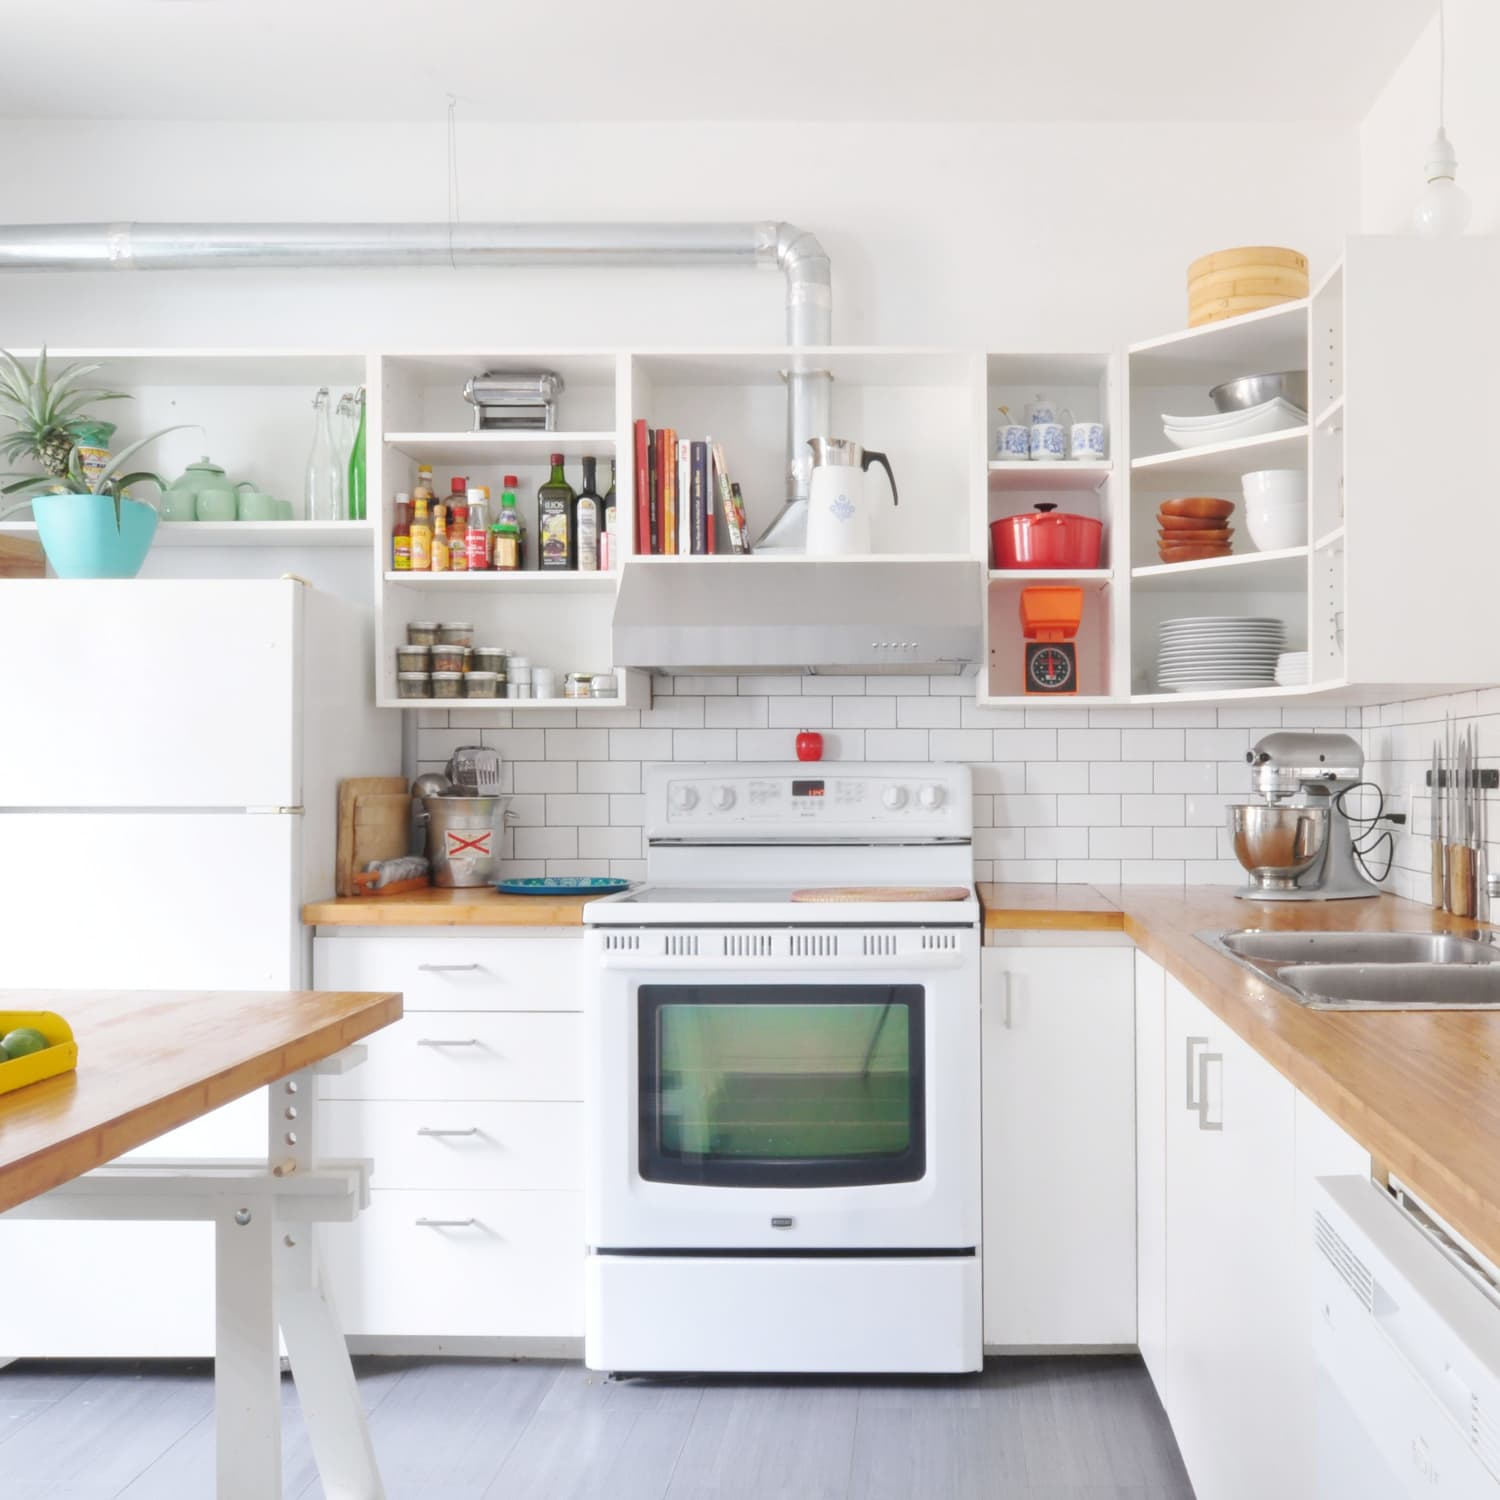 The Ultimate Guide To Cleaning Your Kitchen Cabinets Apartment Therapy